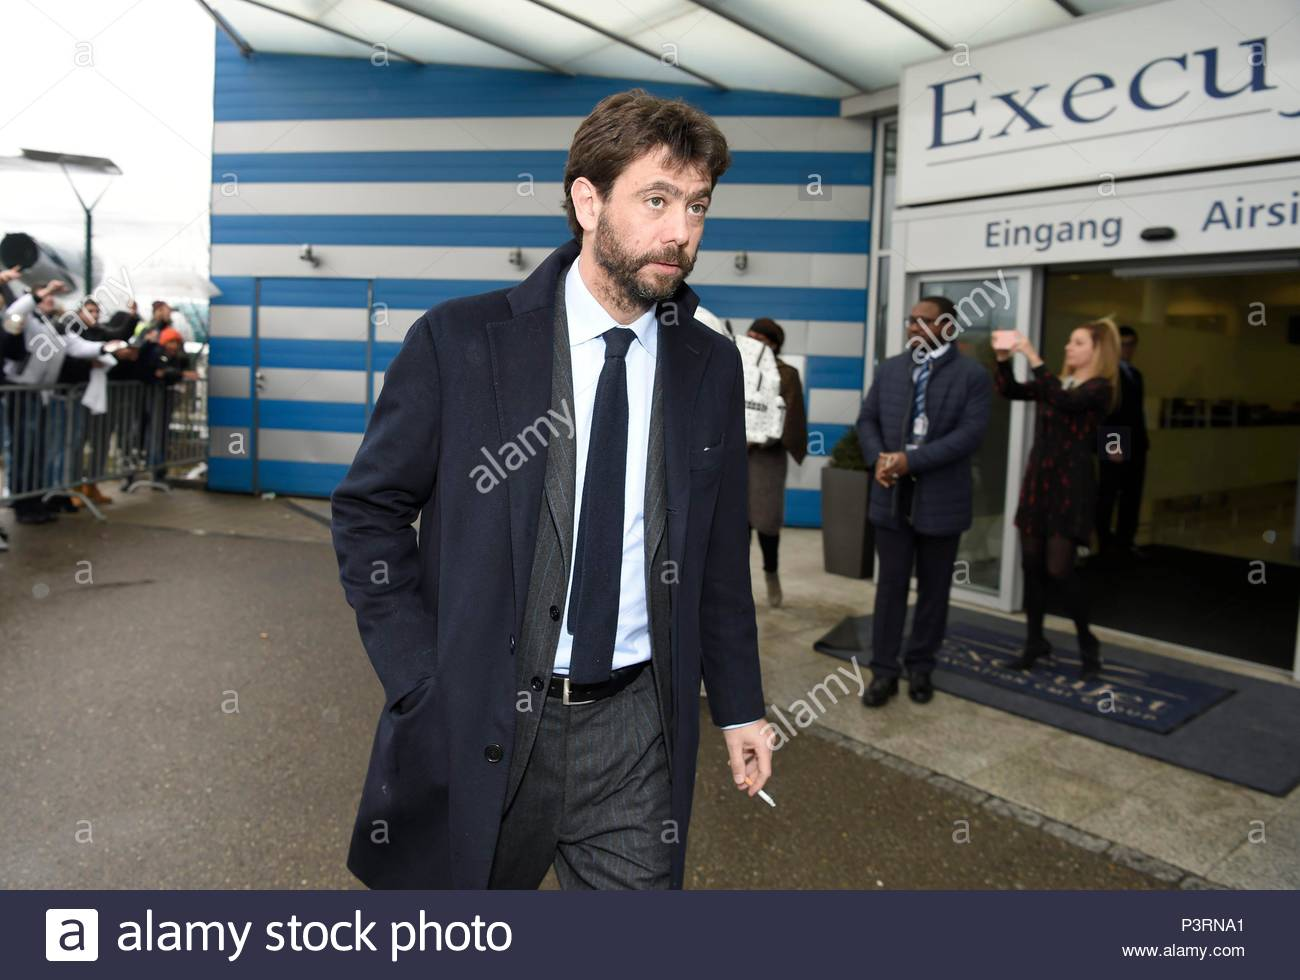 Andrea Agnelli. 11JAN2016 Soccer stars arriving at Zurich airport for the FIFA Ballon d'Or Gala 2015 at the Kongresshalle in Zurich. - Stock Image